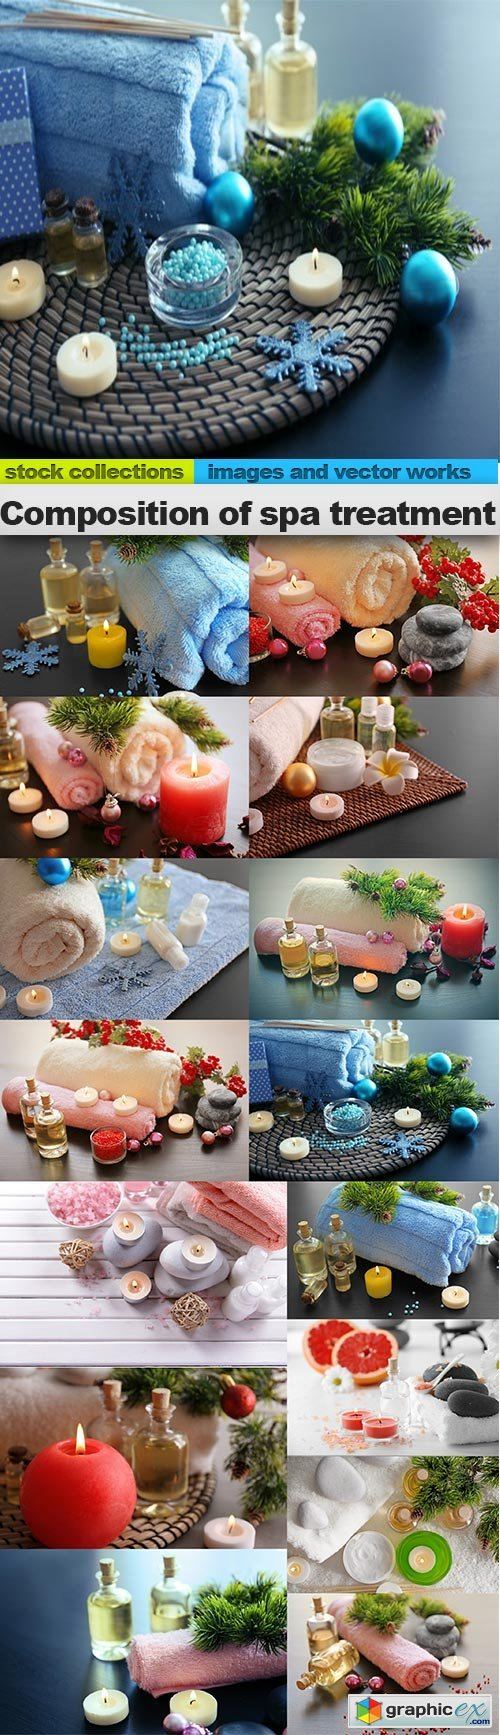 Composition of spa treatment, 15 x UHQ JPEG